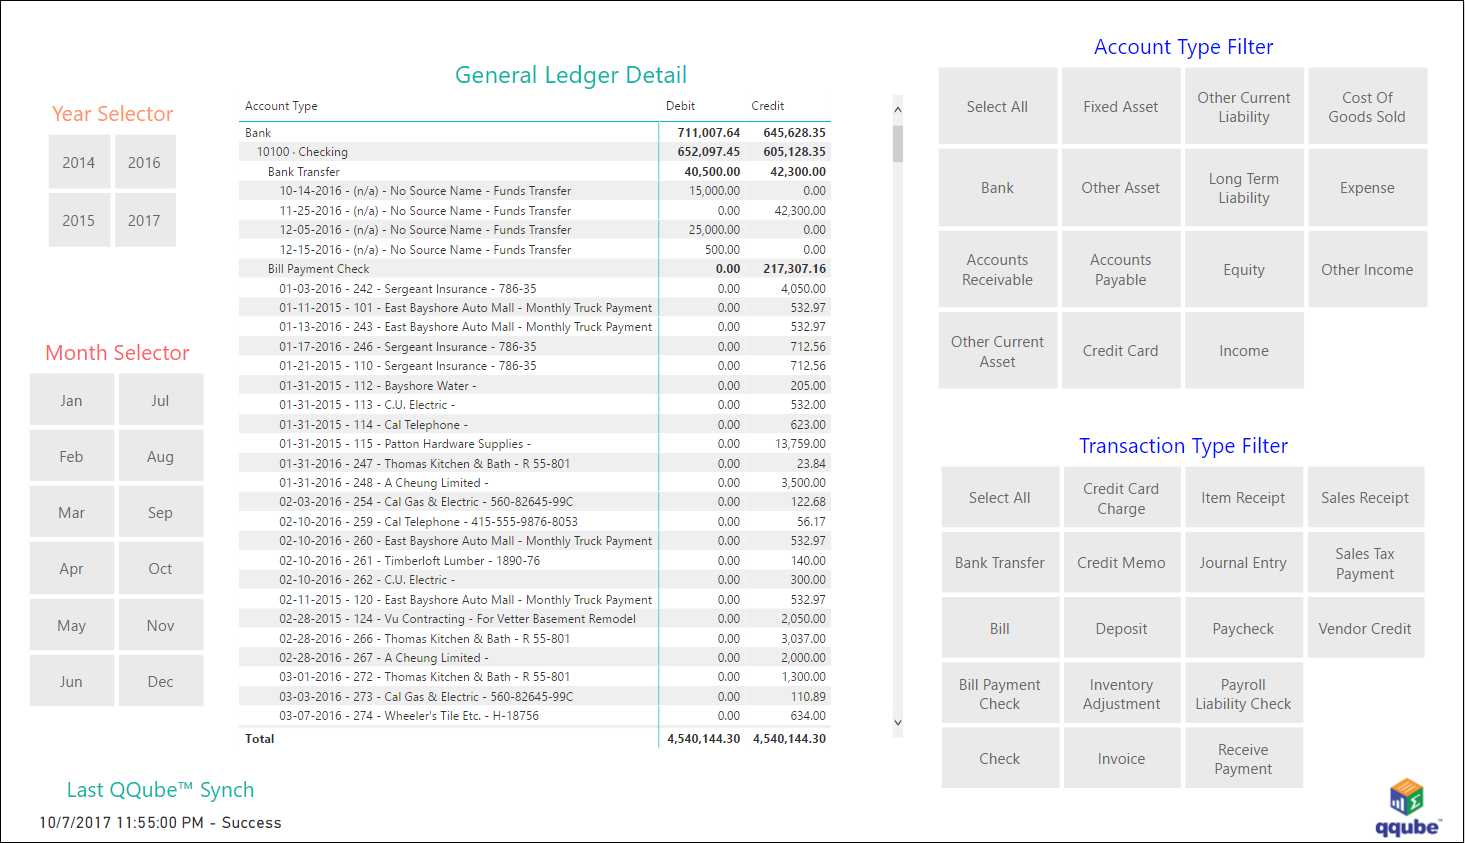 QQube and Power BI - General Ledger Detail